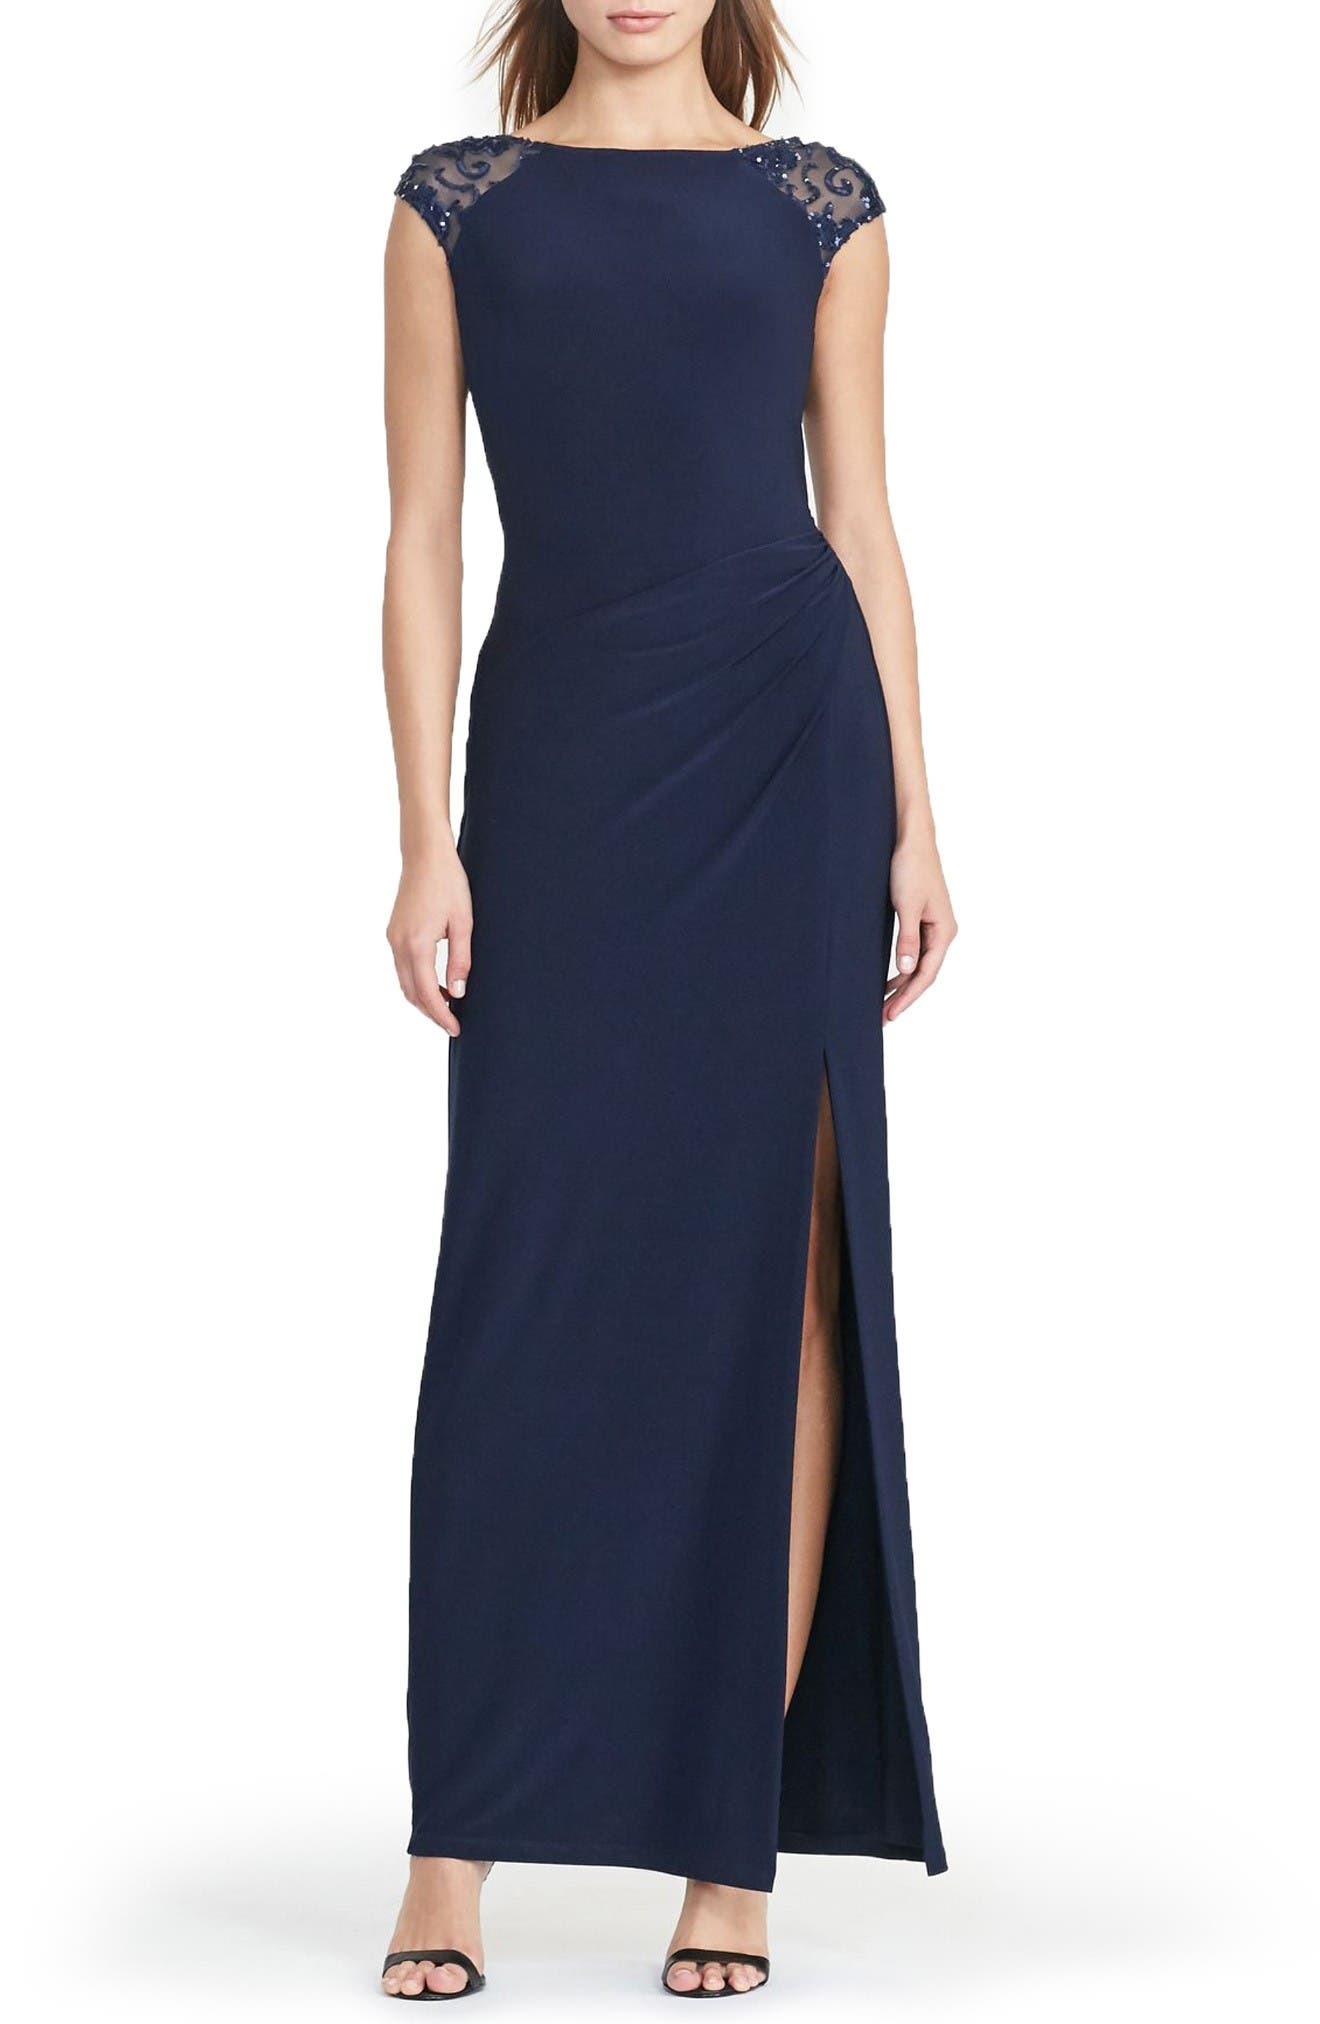 Lauren Ralph Lauren Embellished Draped Jersey Gown (Regular & Petite)